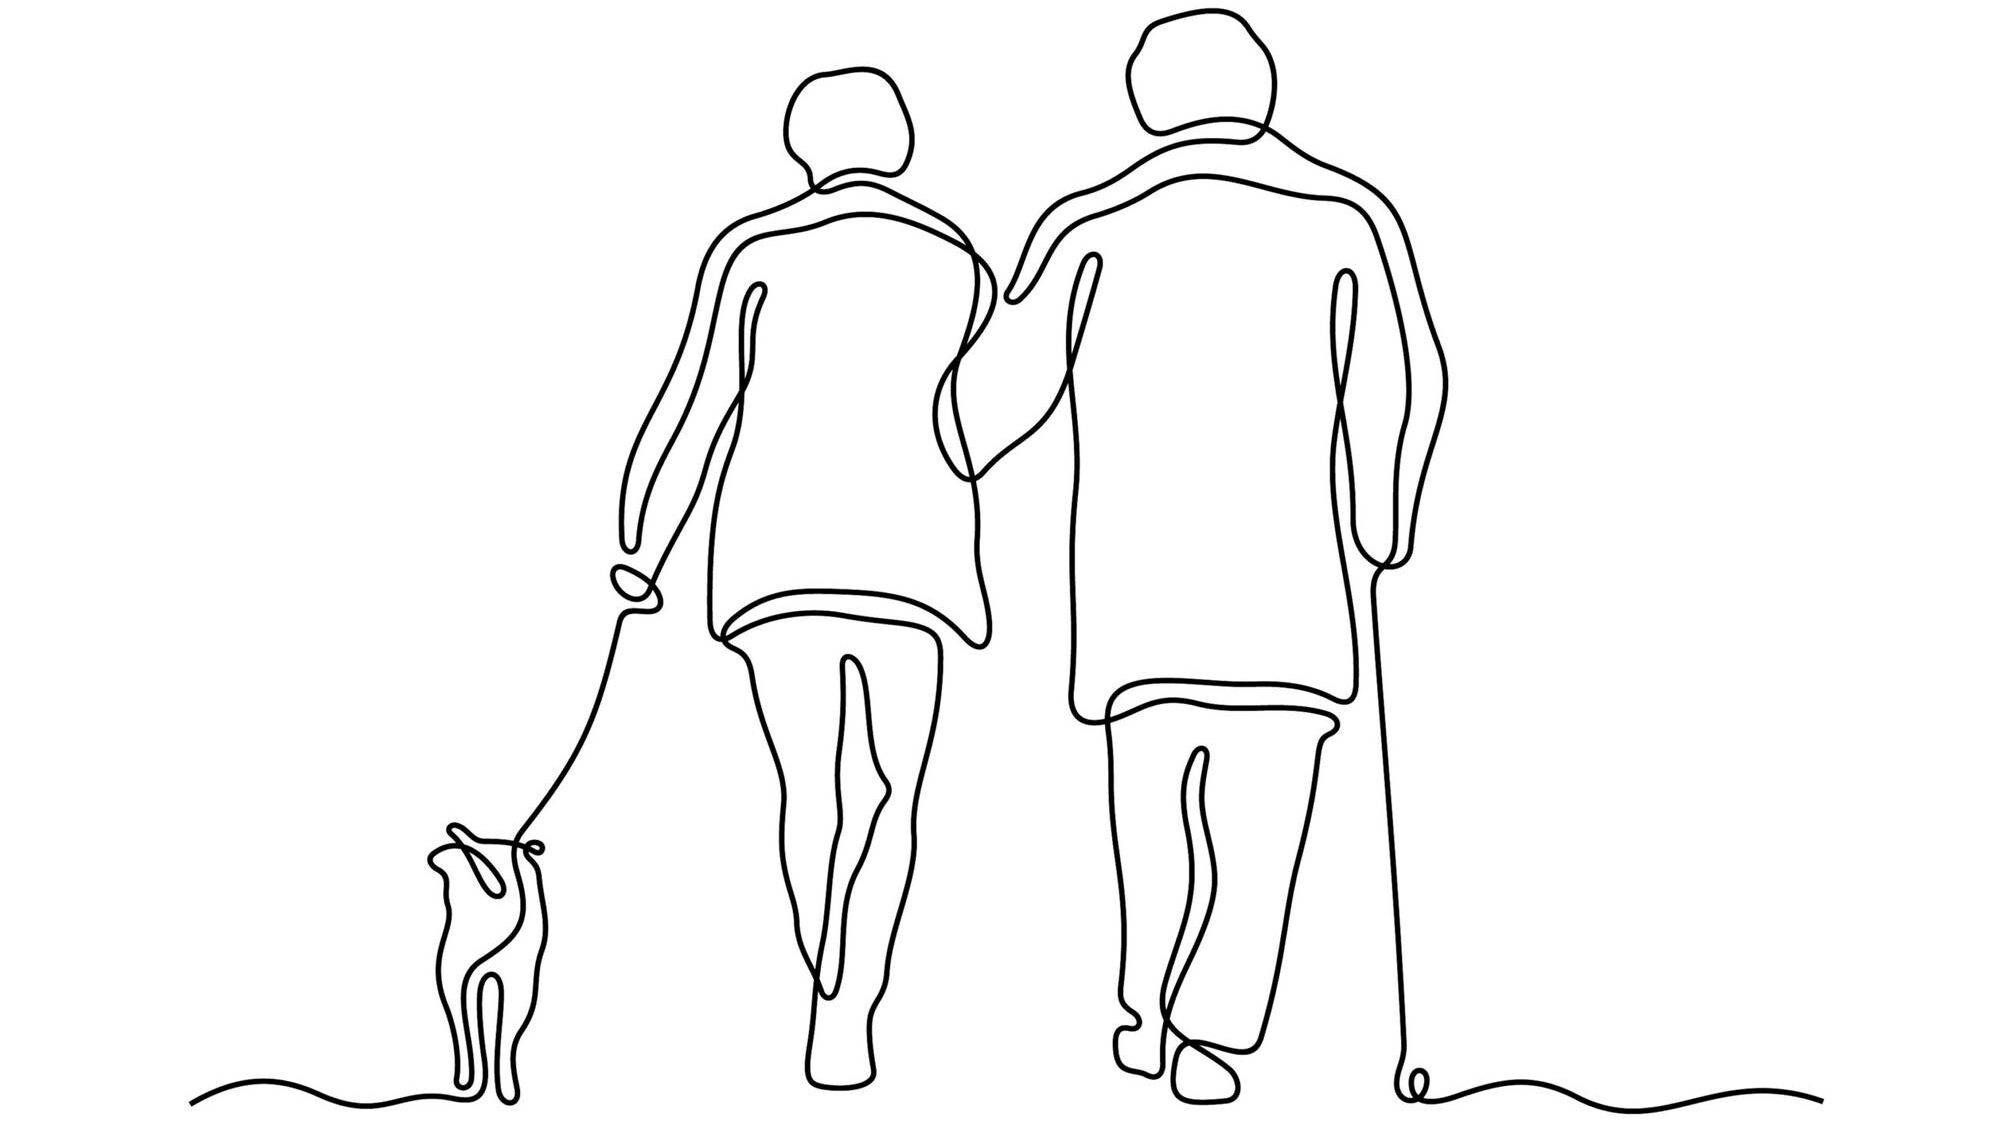 Illustration of elderly couple walking a dog, childless adult, Rewire, future without kids